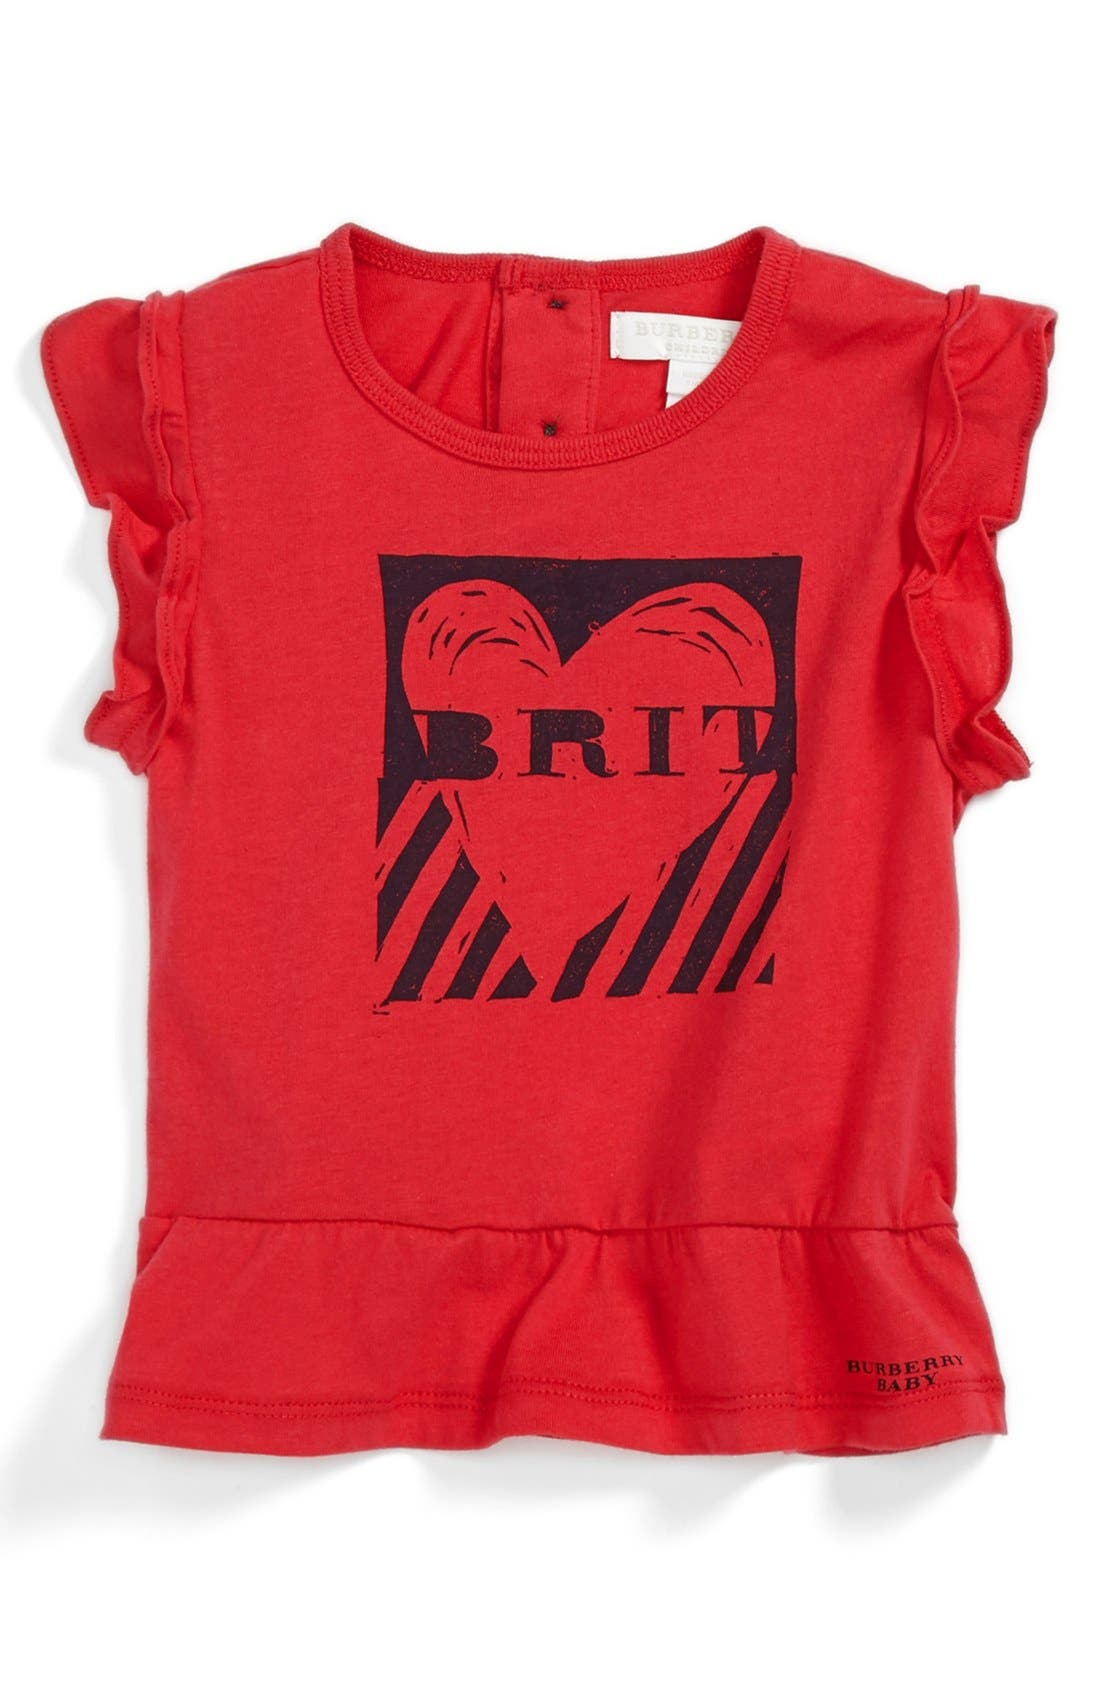 Main Image - Burberry Tee (Baby Girls)